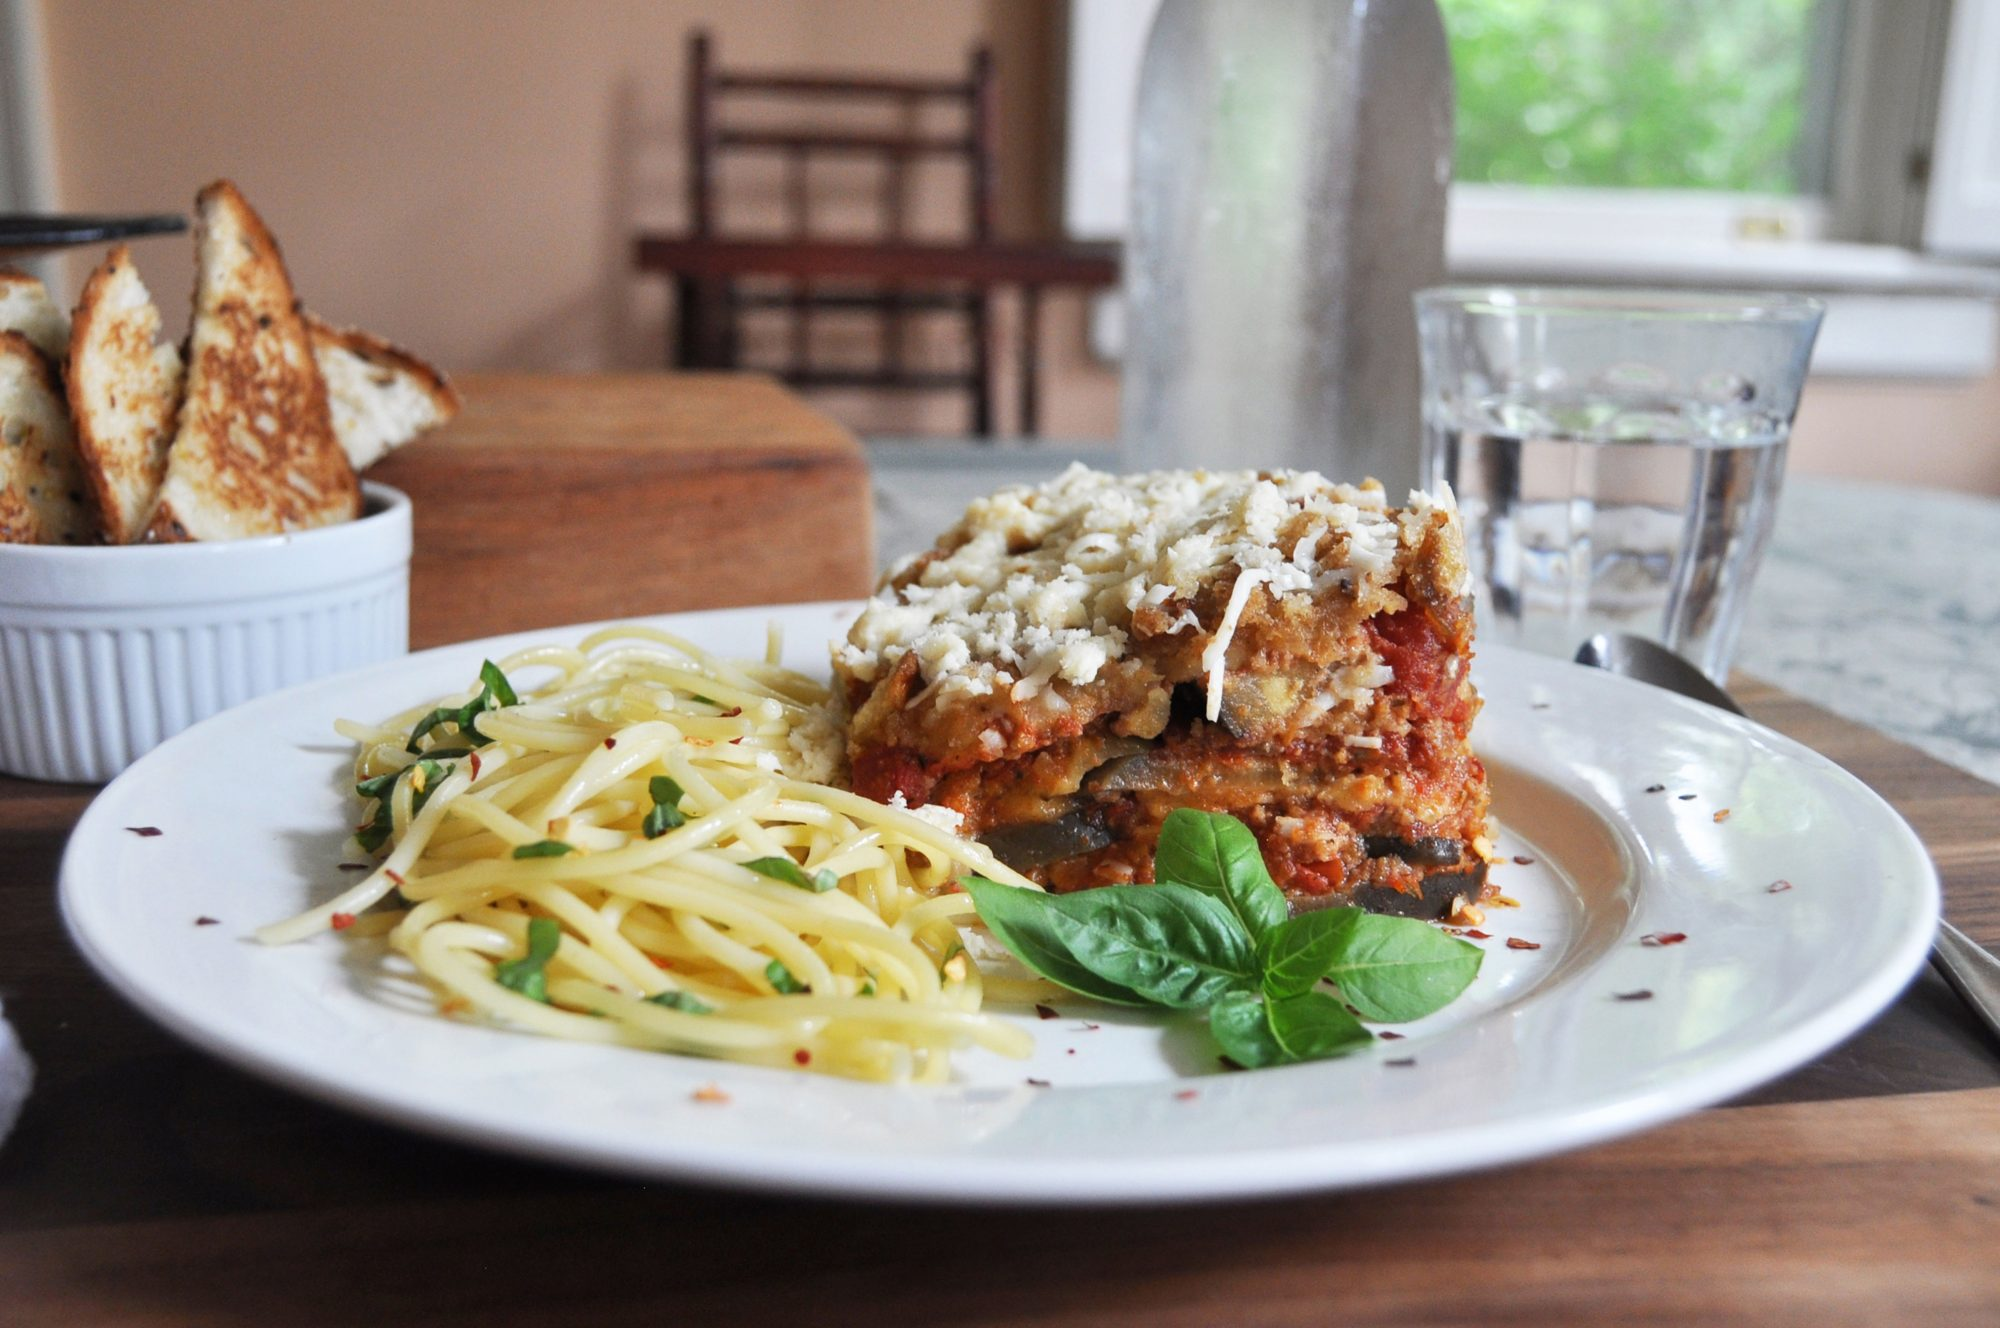 Anne Wolfe Postic's Slow Cooker Eggplant Parmesan